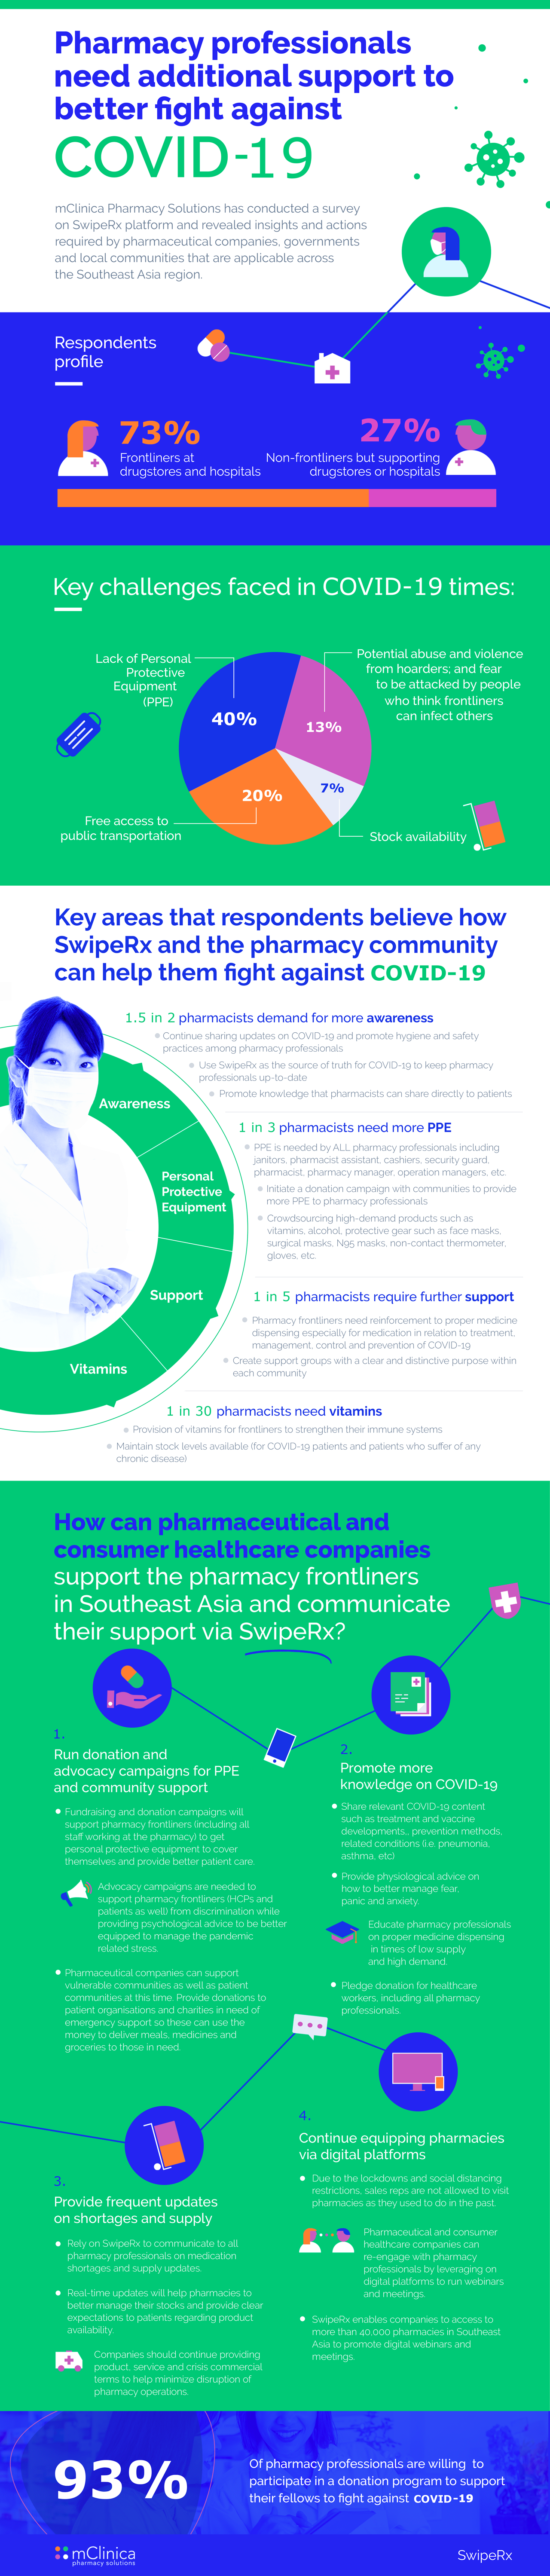 Pharmacy professionals need additional support to better fight against COVID-19